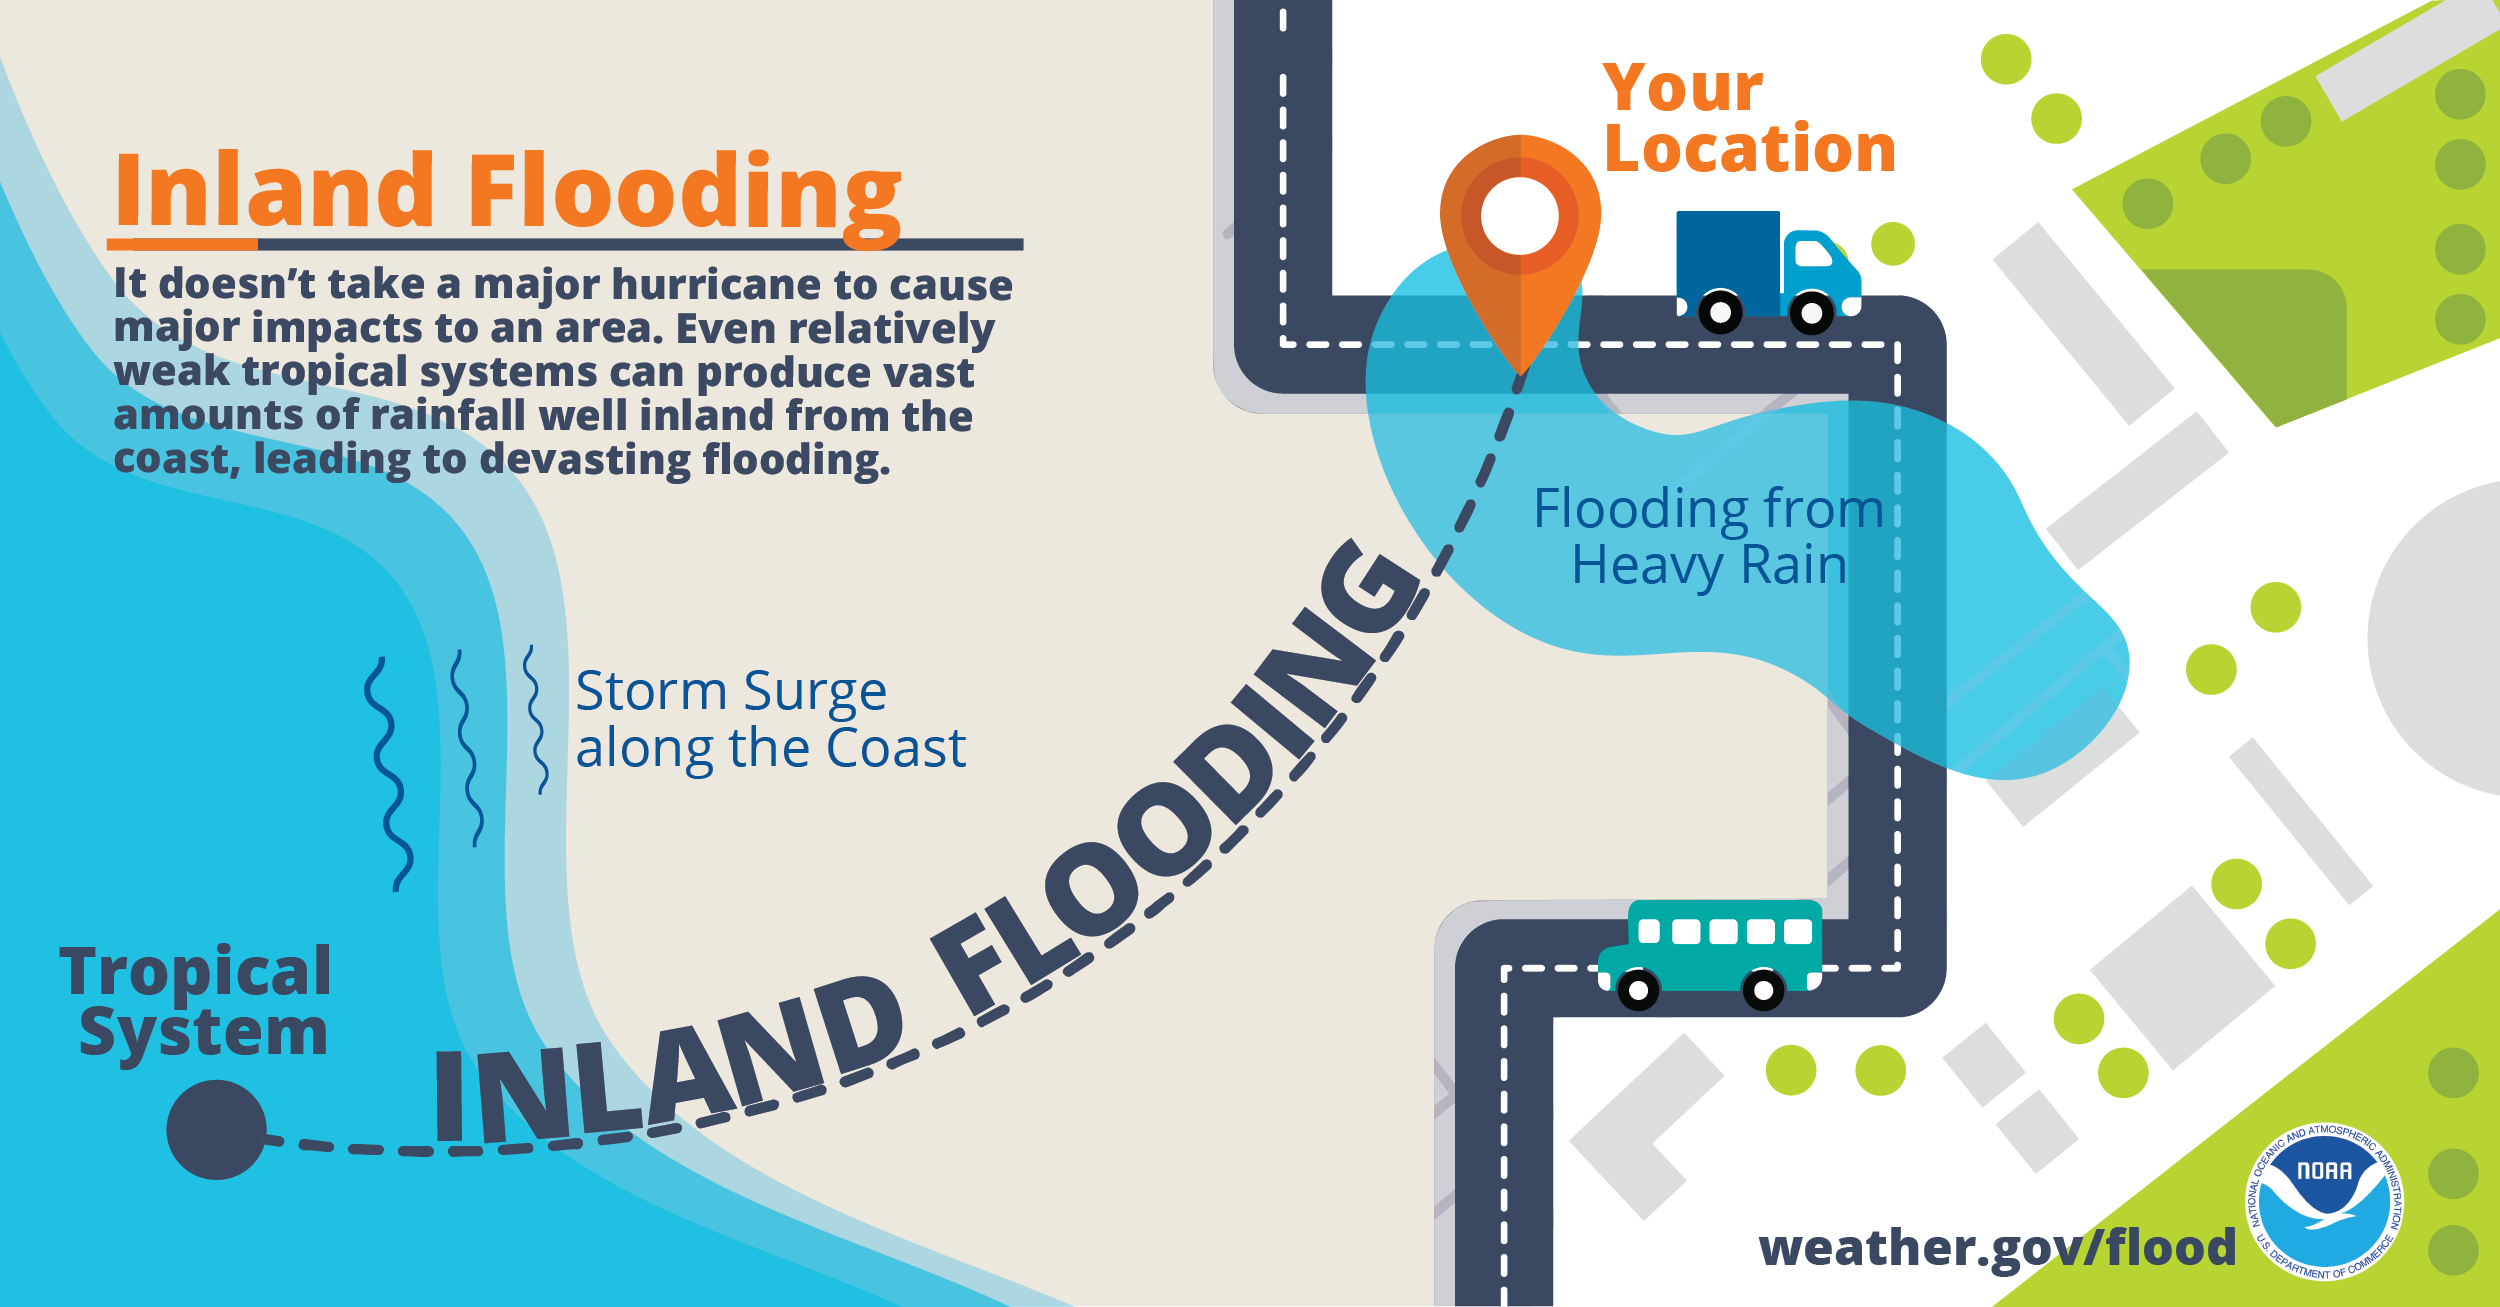 Inland Flooding: It doesn't take a major hurricane to cause major impacts to an area. Even relatively weak tropical systems can produce vast amounts of rainfall well inland from the coast, leading to devastating flooding.